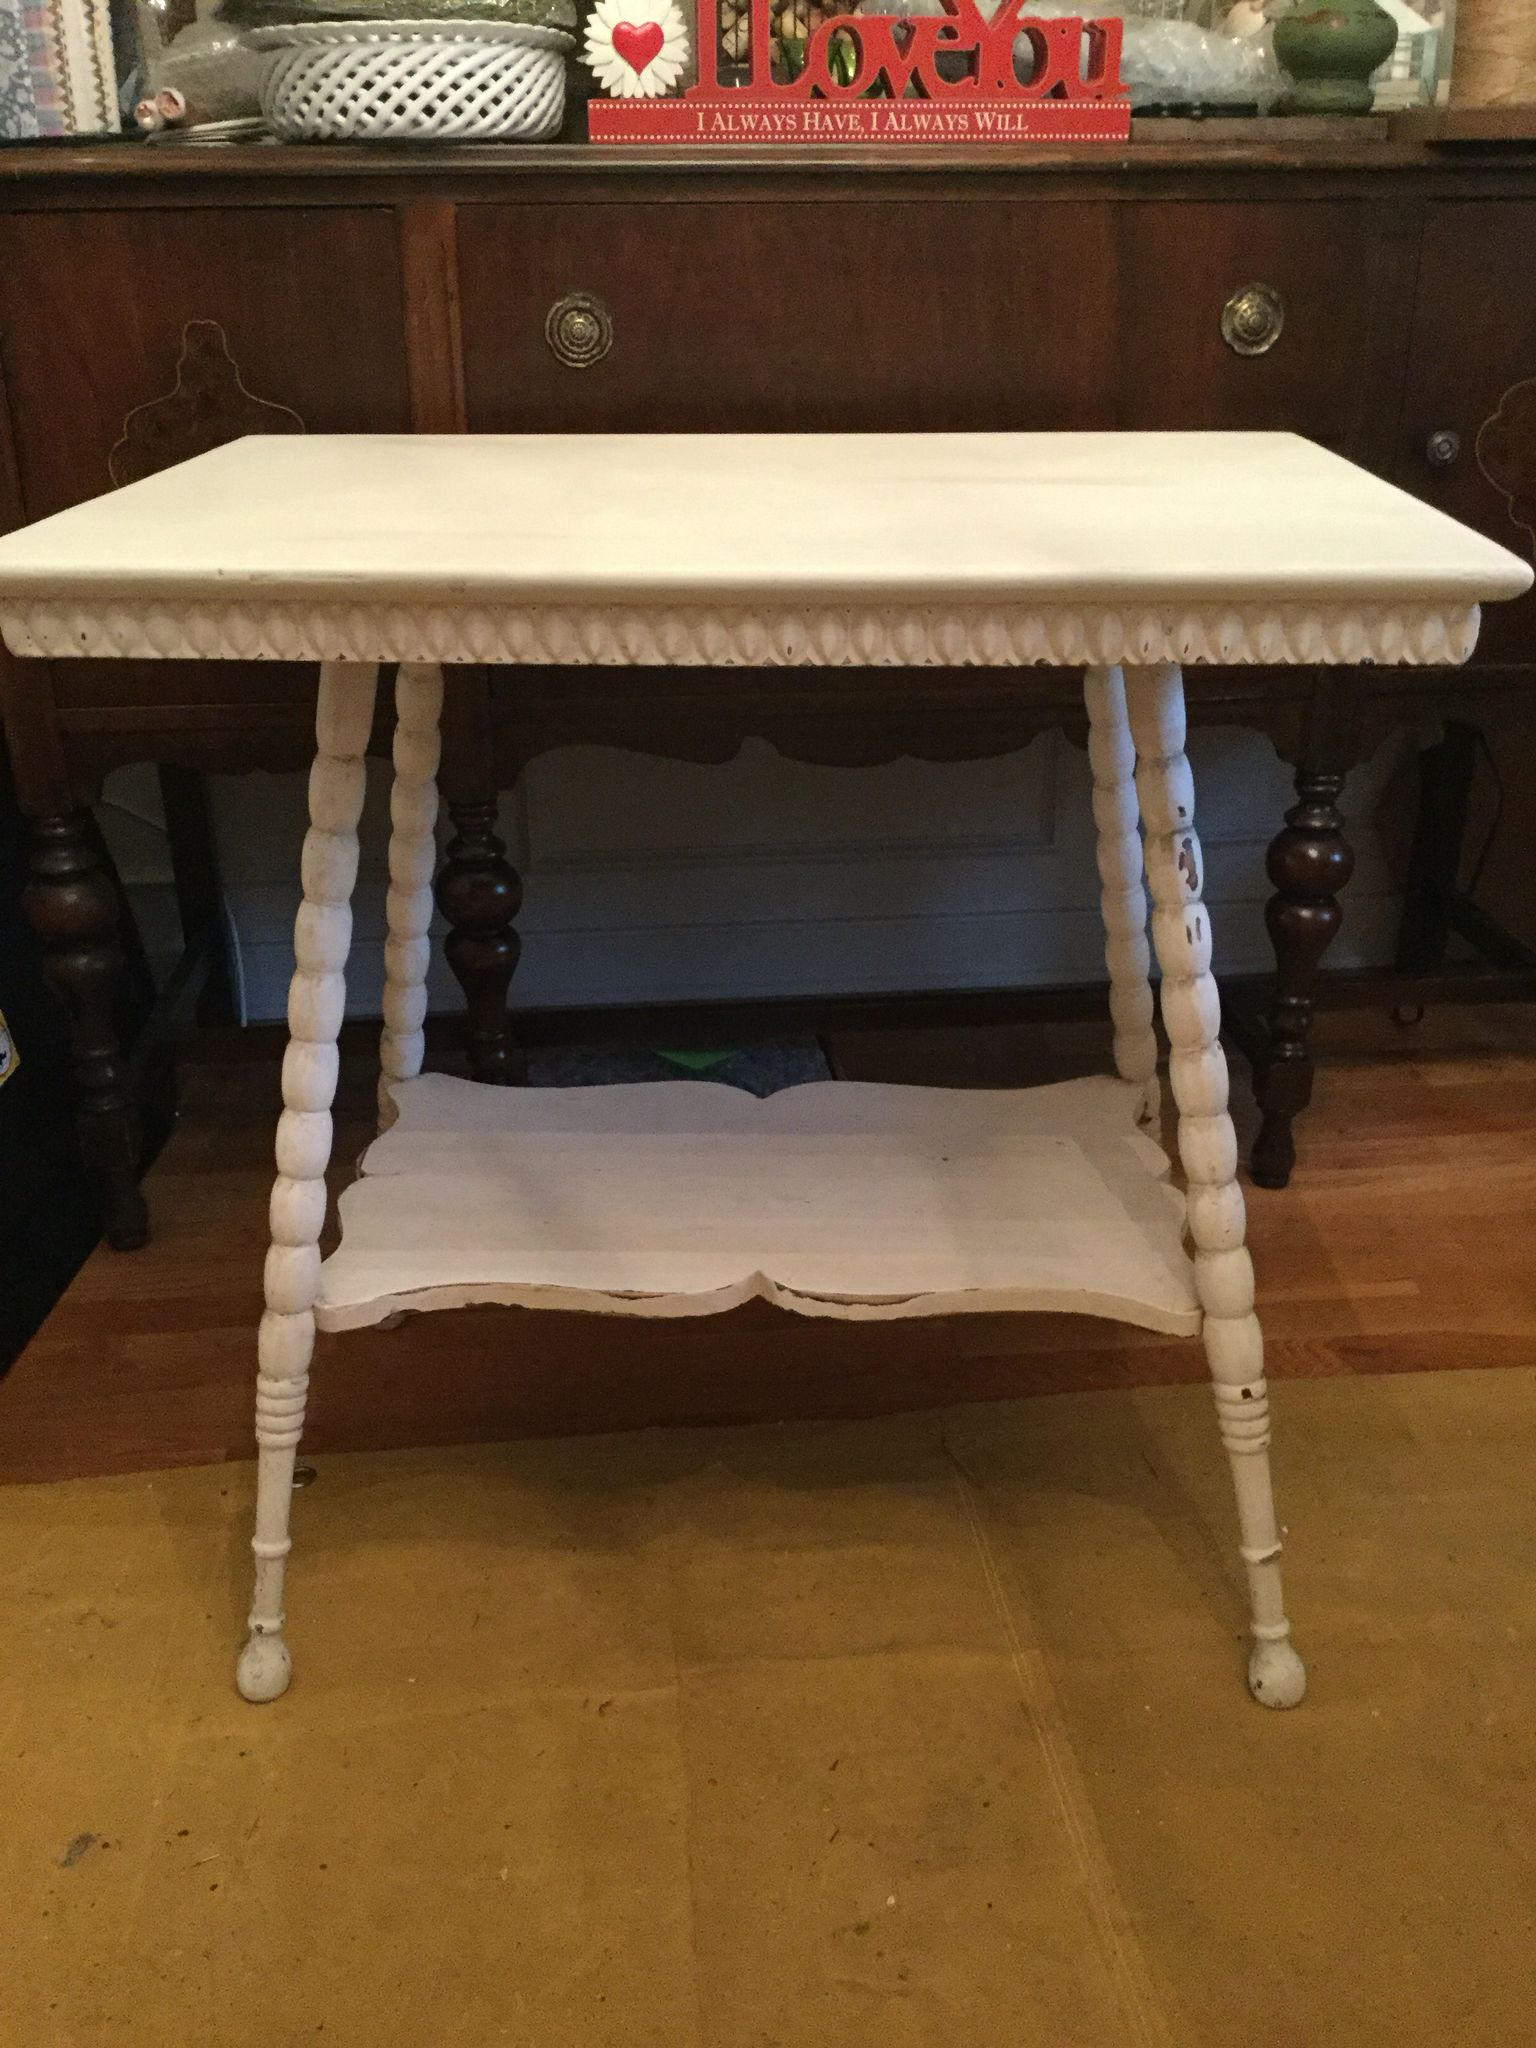 High Quality Vintage 2 Tier Spindle Leg Table, Chalk Painted U0026 Distressed